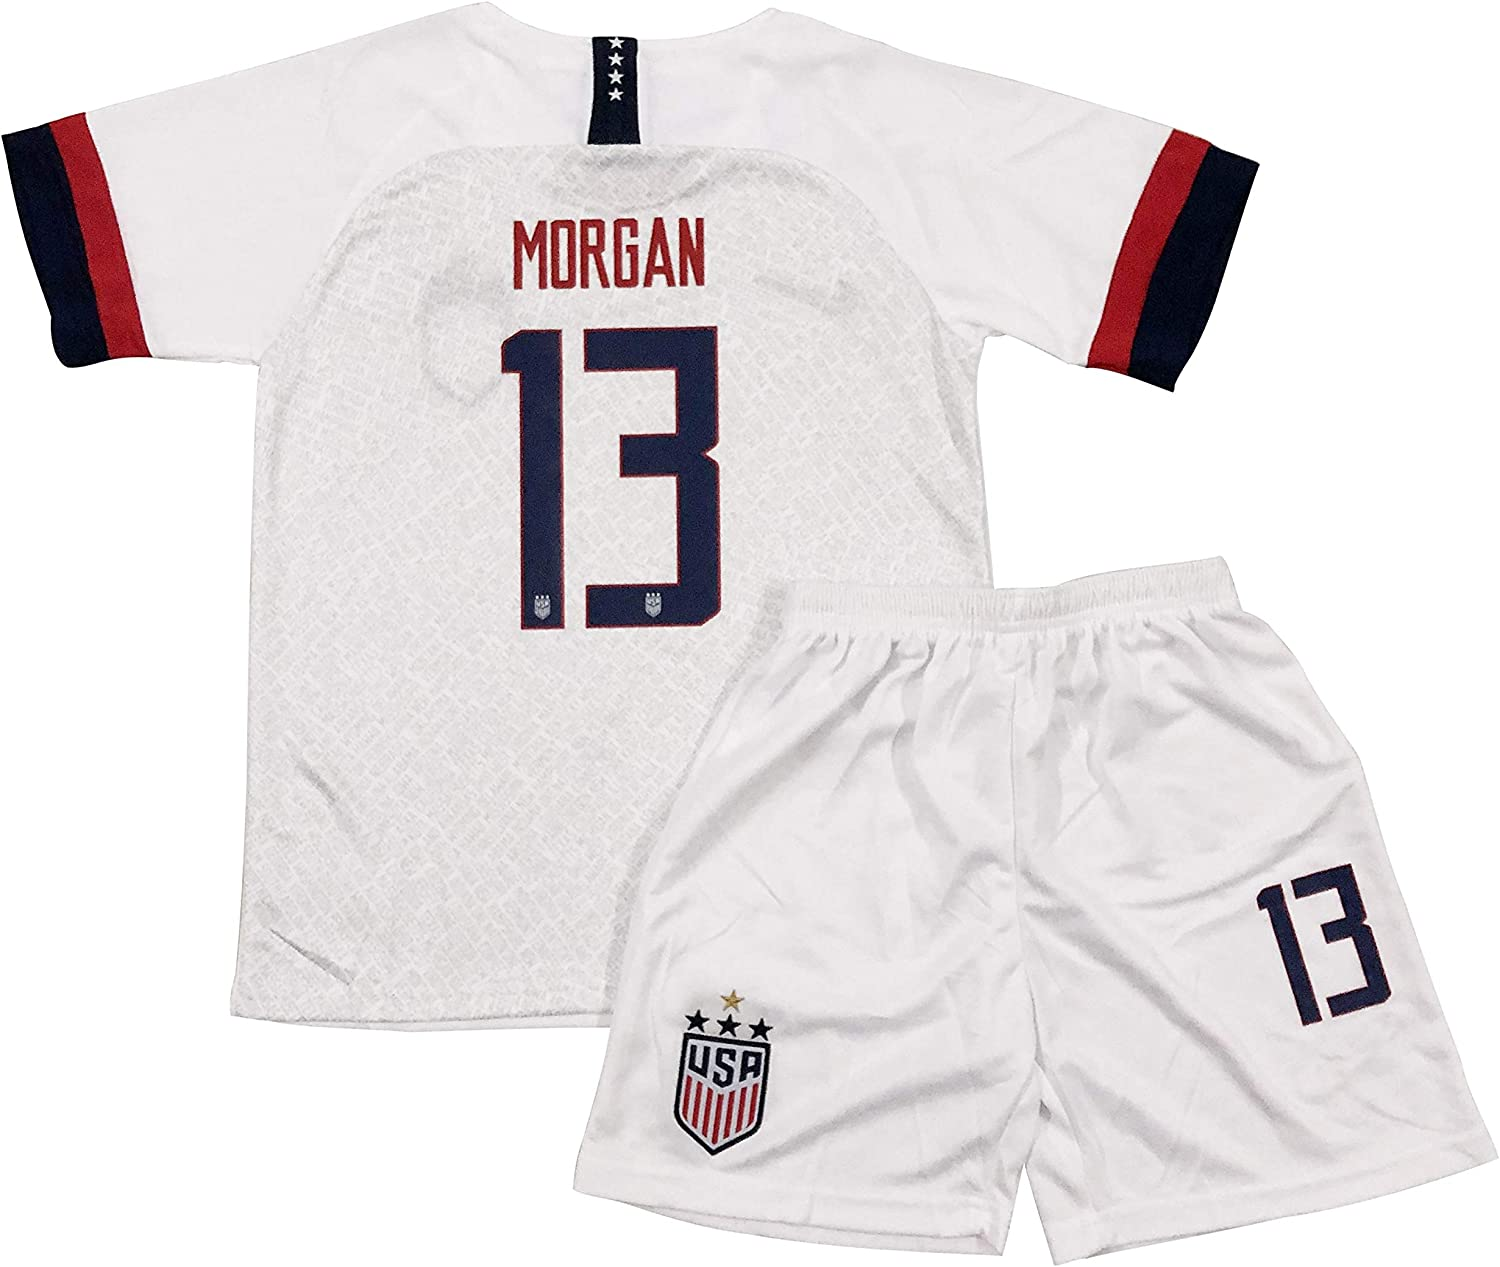 Rowex New Morgan 13 USA Home Jersey & Shorts for Kids & Youths